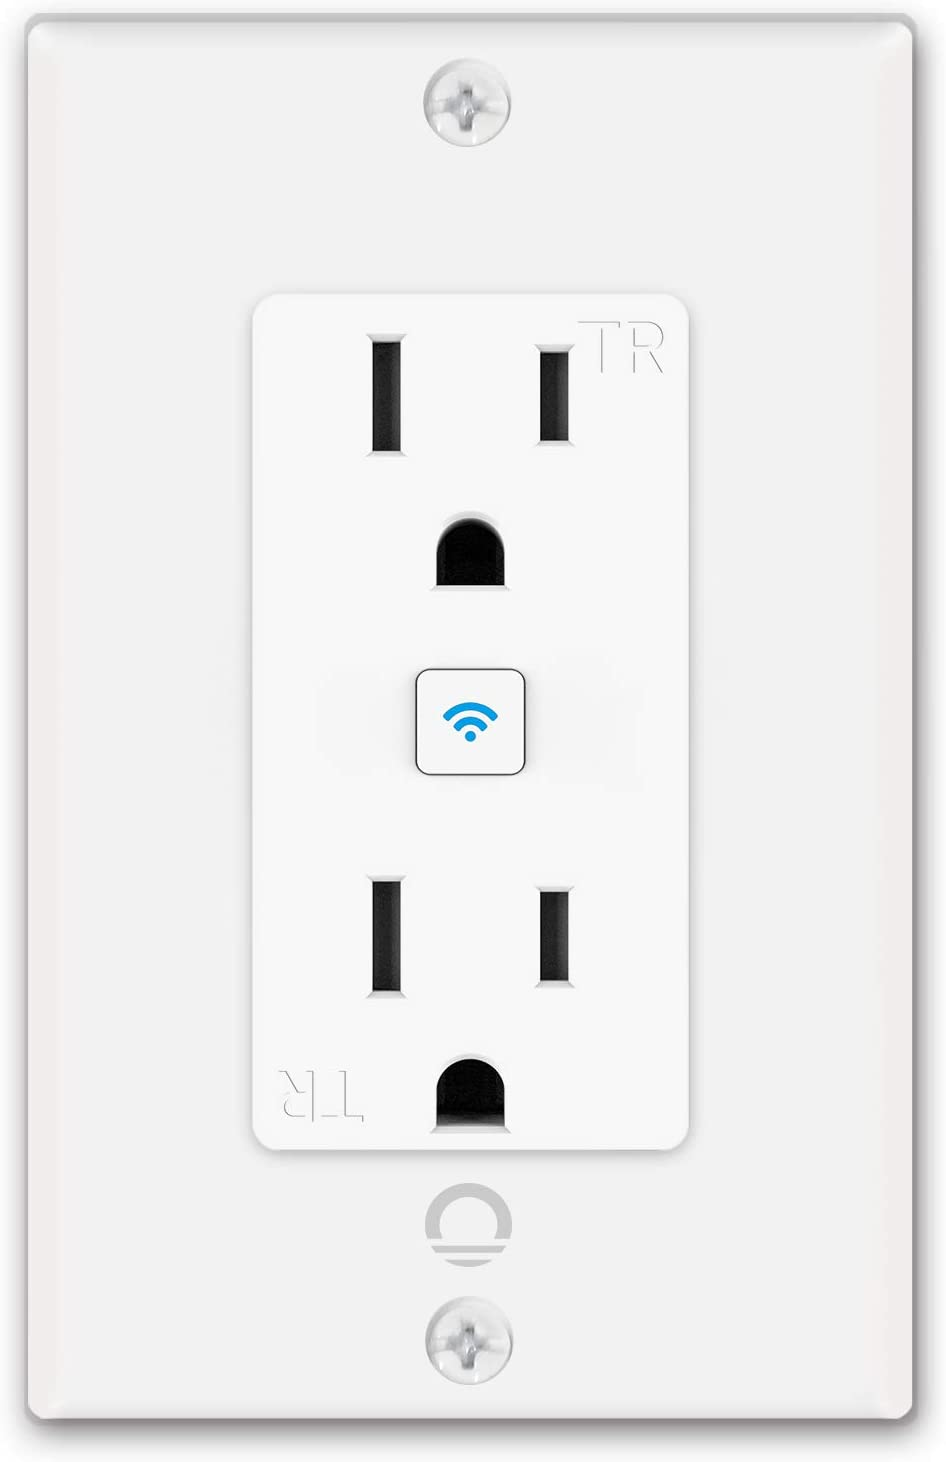 Lumary Smart WiFi In-Wall Outlet 15 Amp Tamper Resistant Split Duplex Receptacle - 2 Plugs, Compatible with Alexa, Google Home (No Hub required) - -